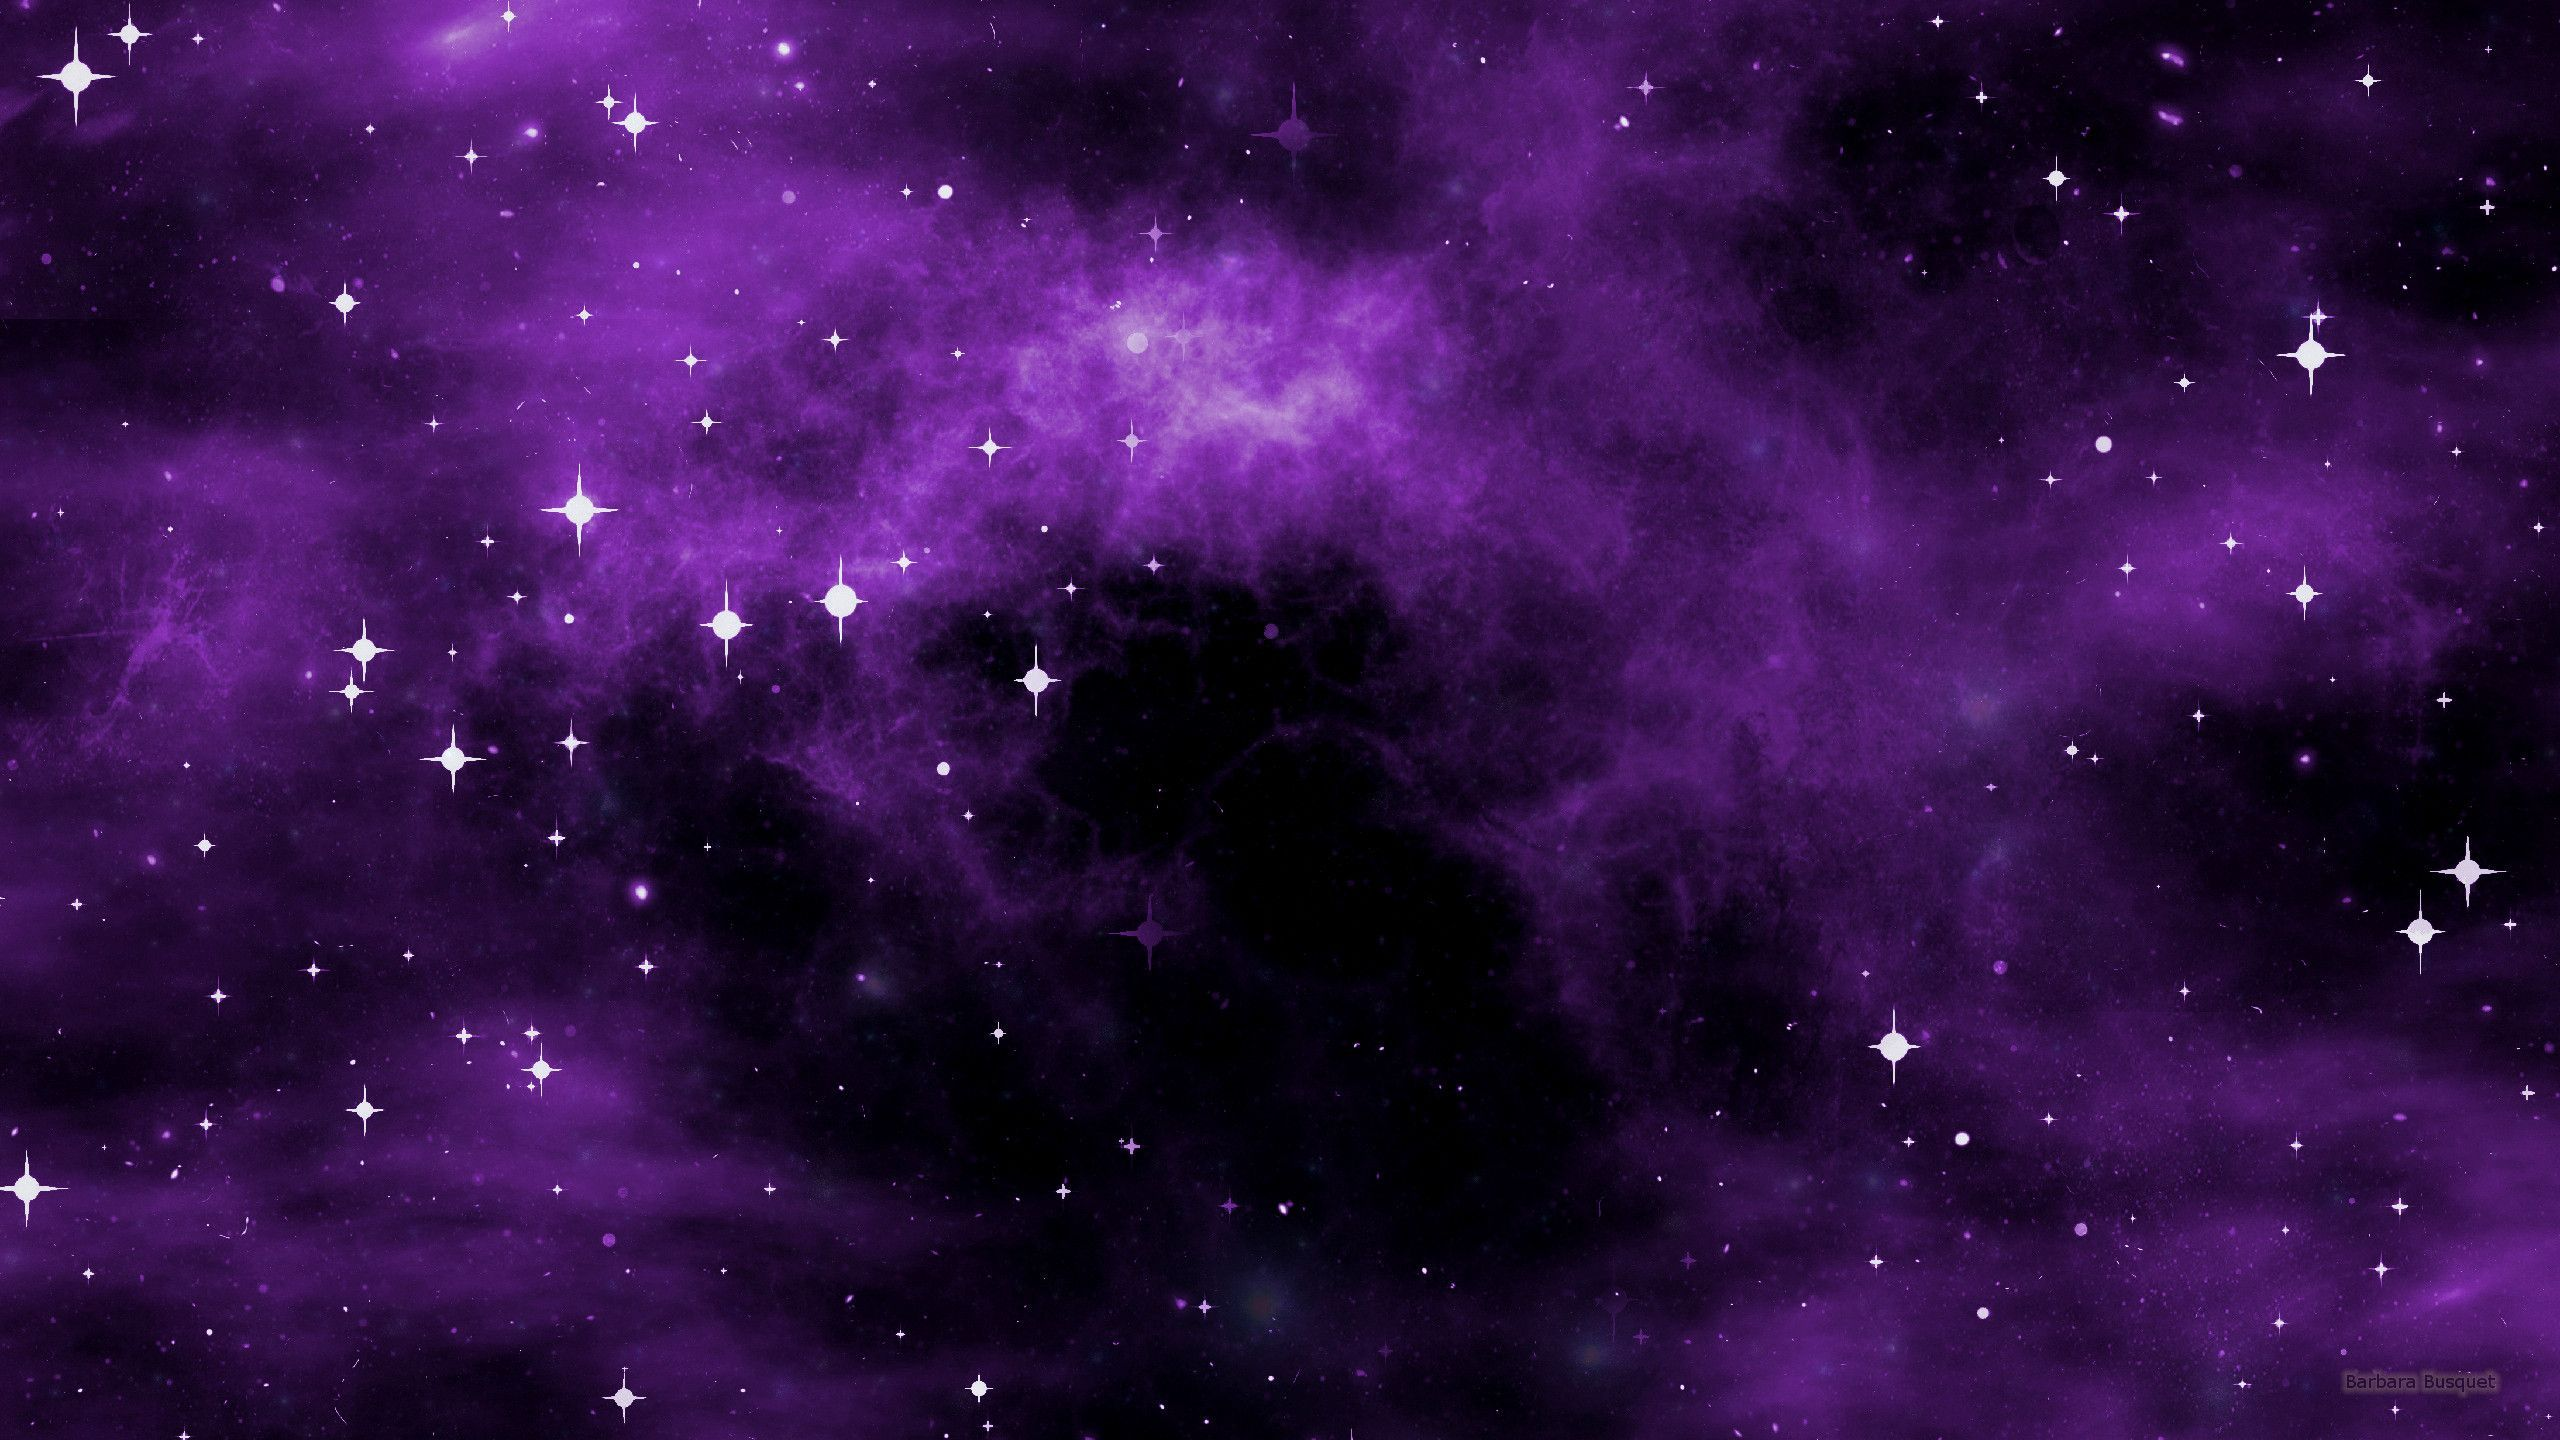 Purple Galaxy Wallpapers On Wallpaperdog